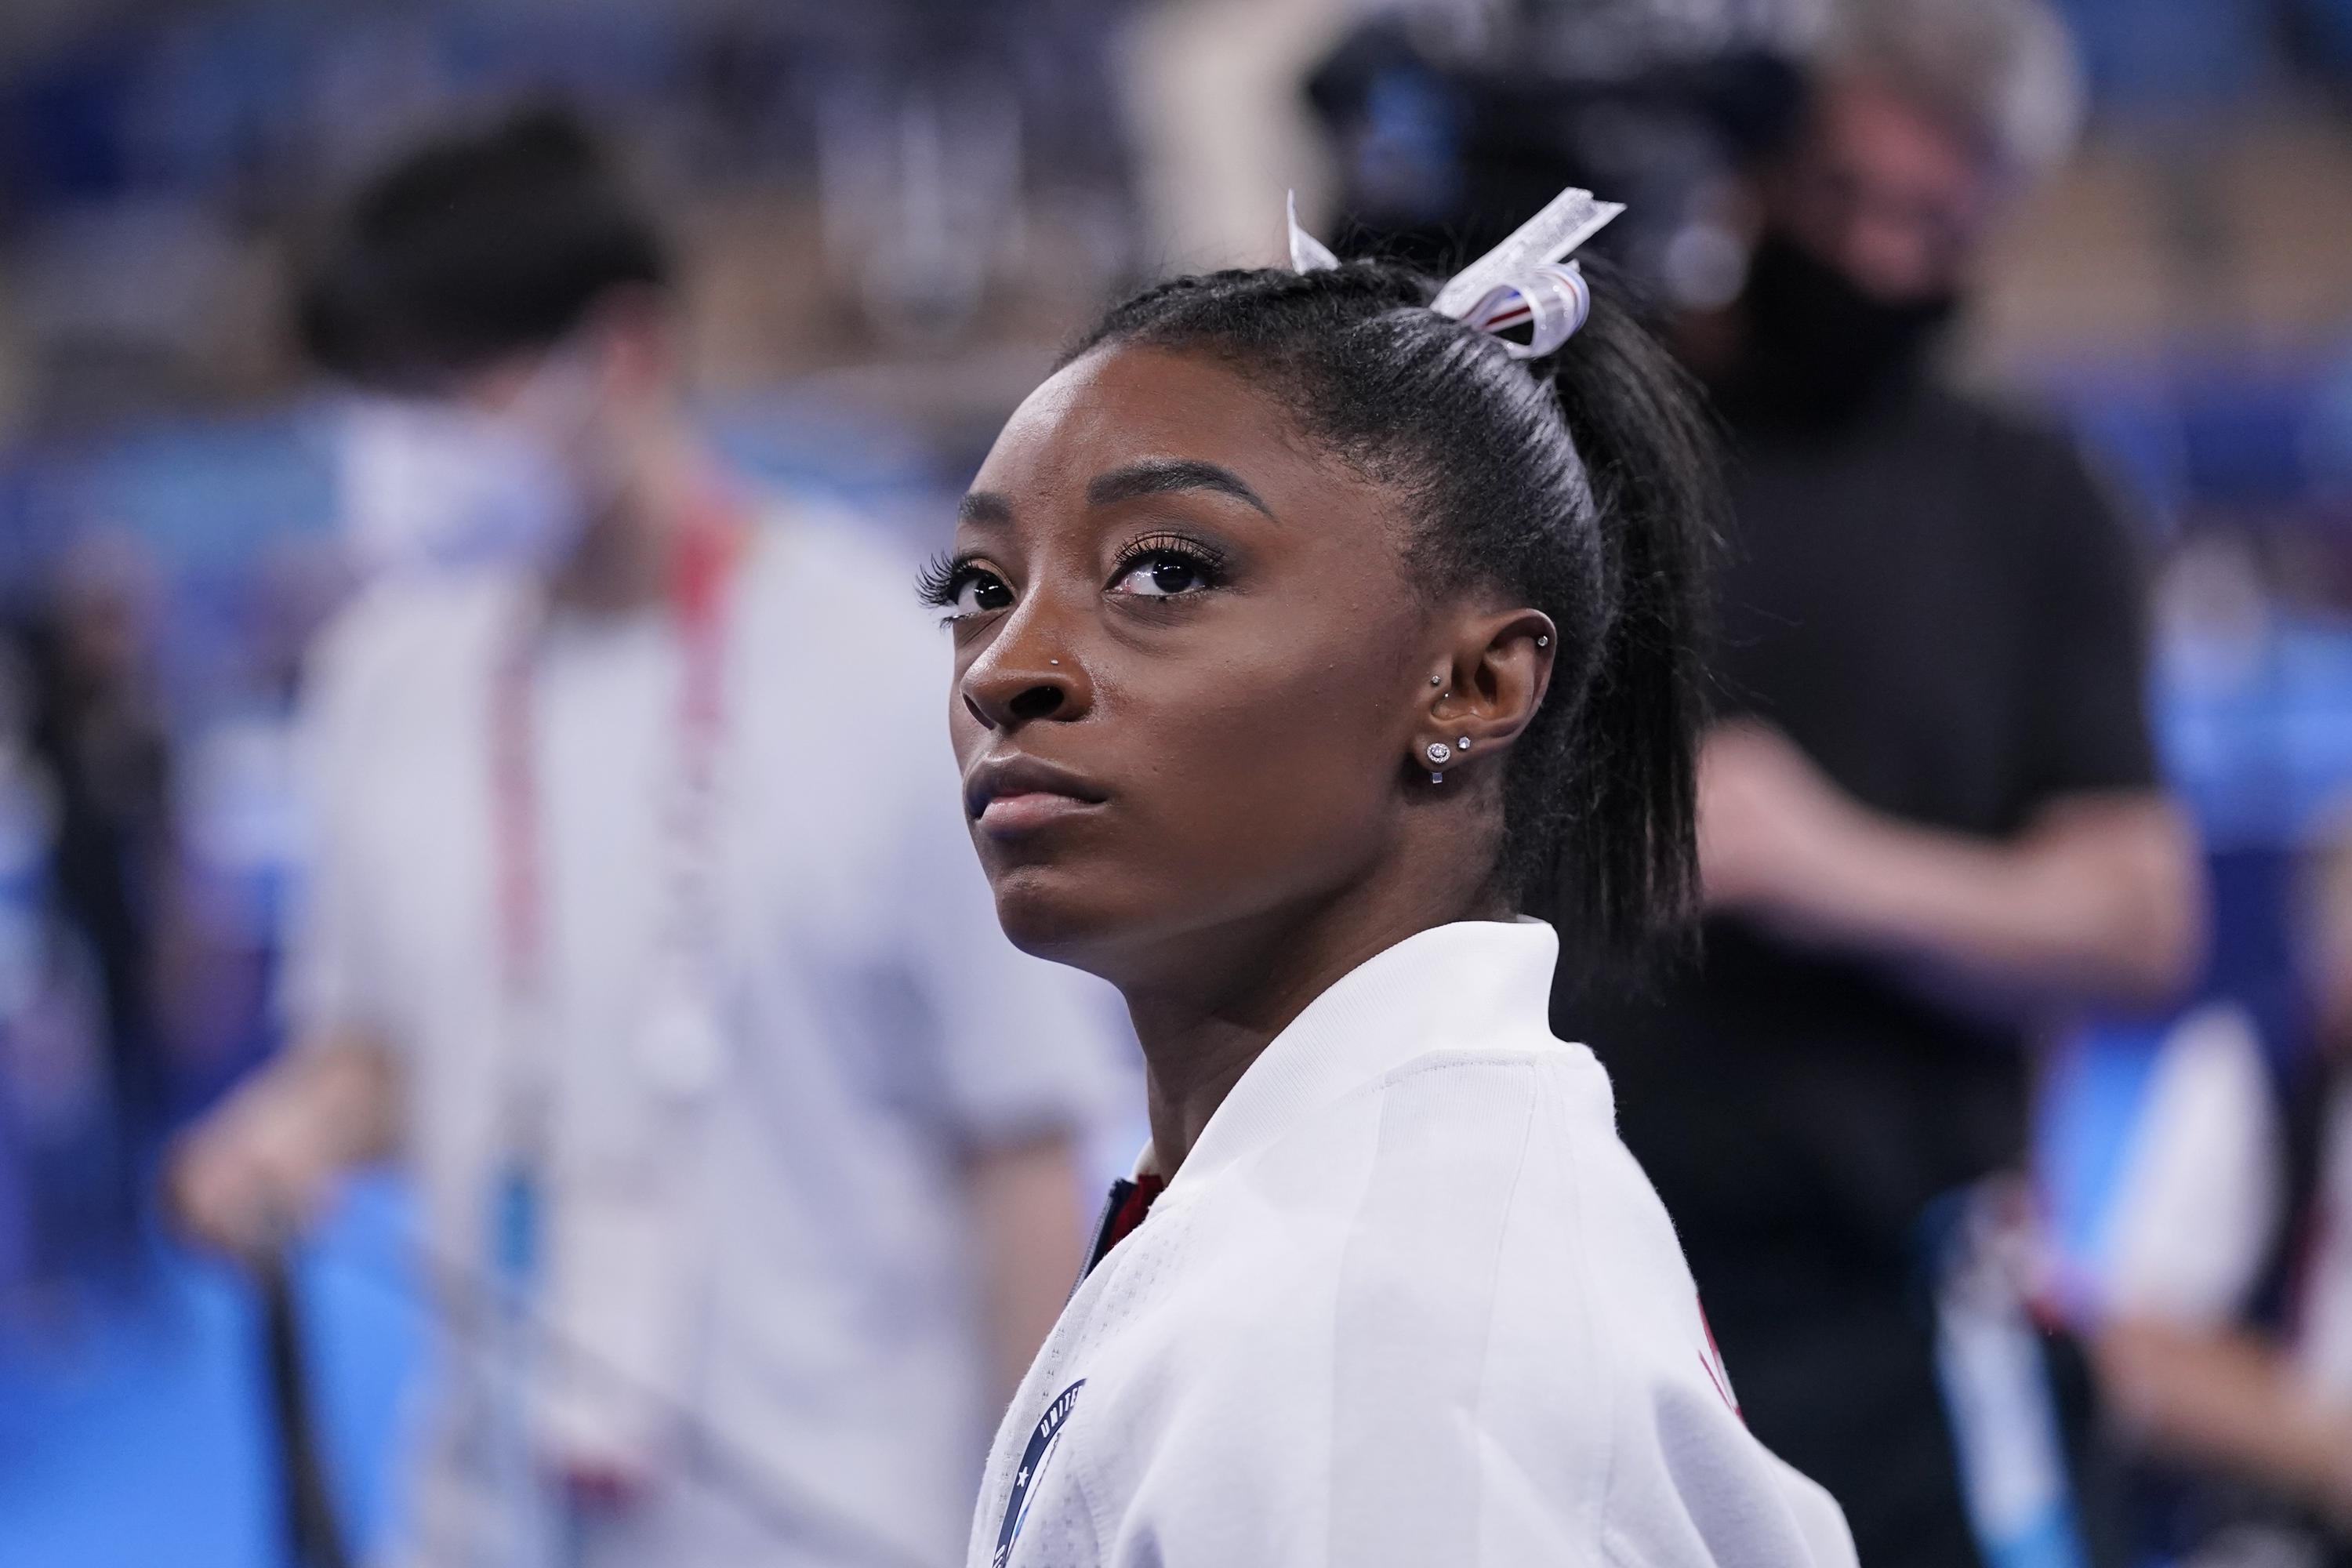 Olympic champ Biles out of team finals with apparent injury - Associated Press